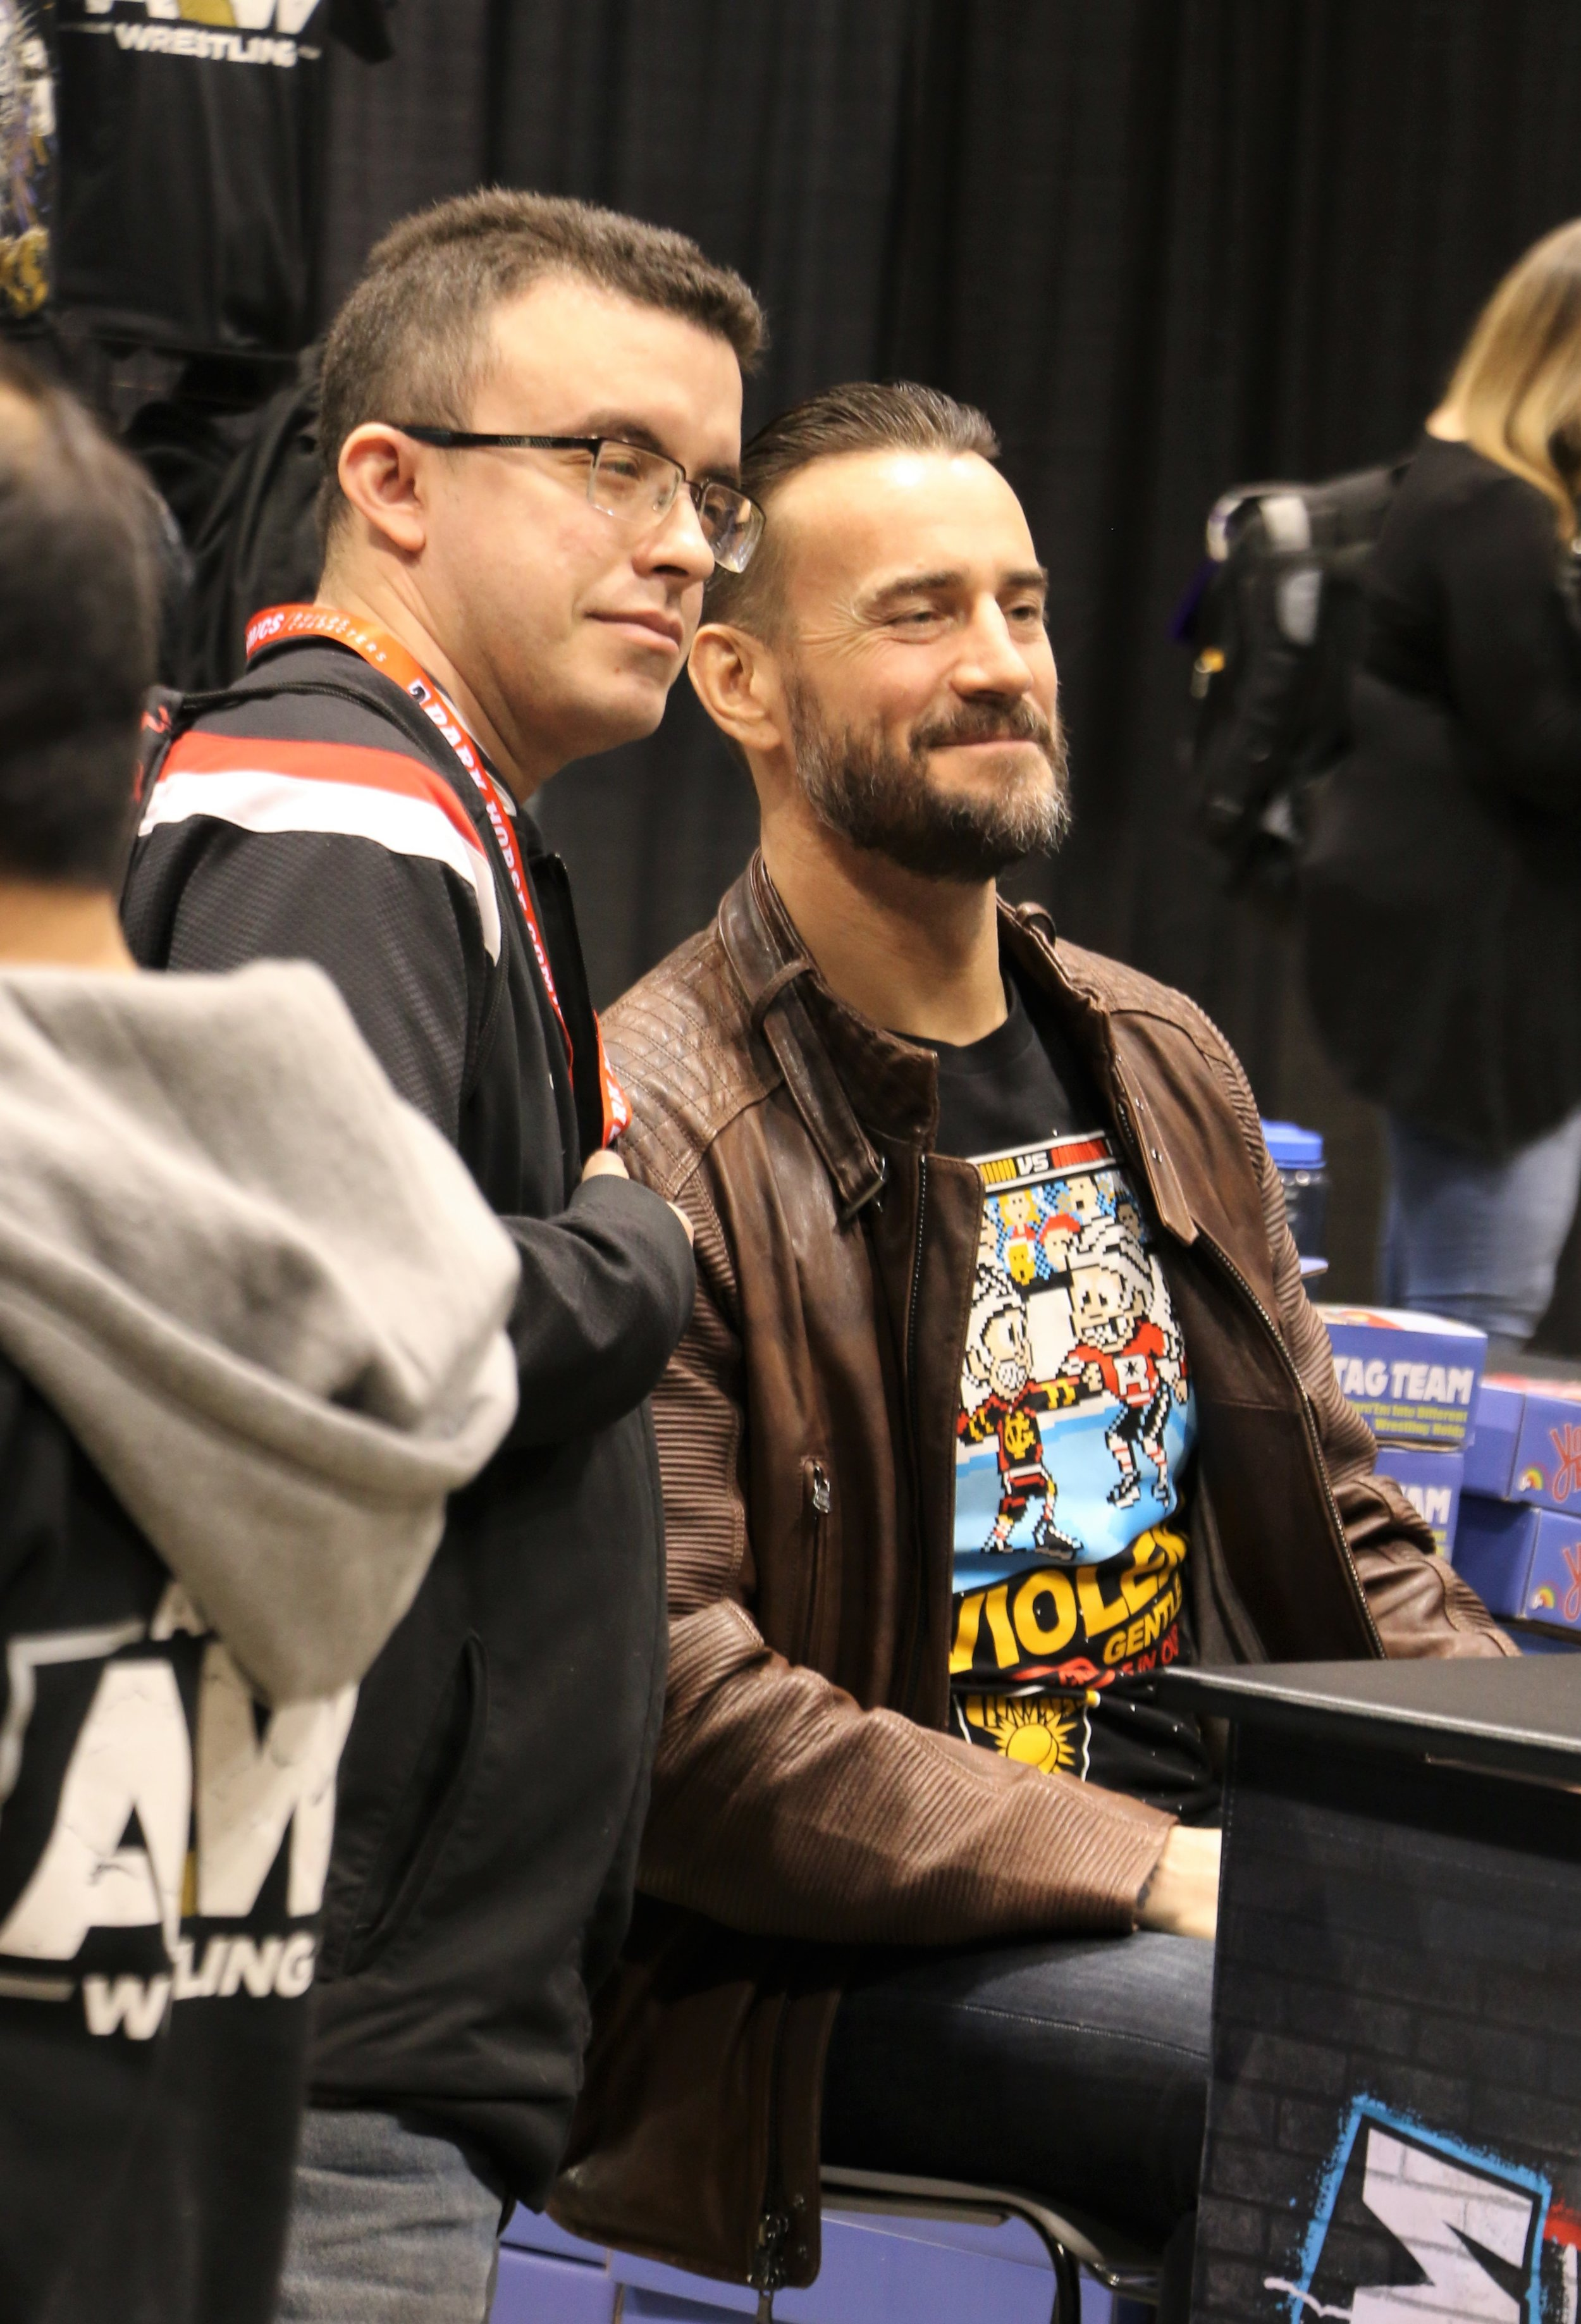 CM Punk, right, poses with a fan at the Pro Wrestling Tees booth.